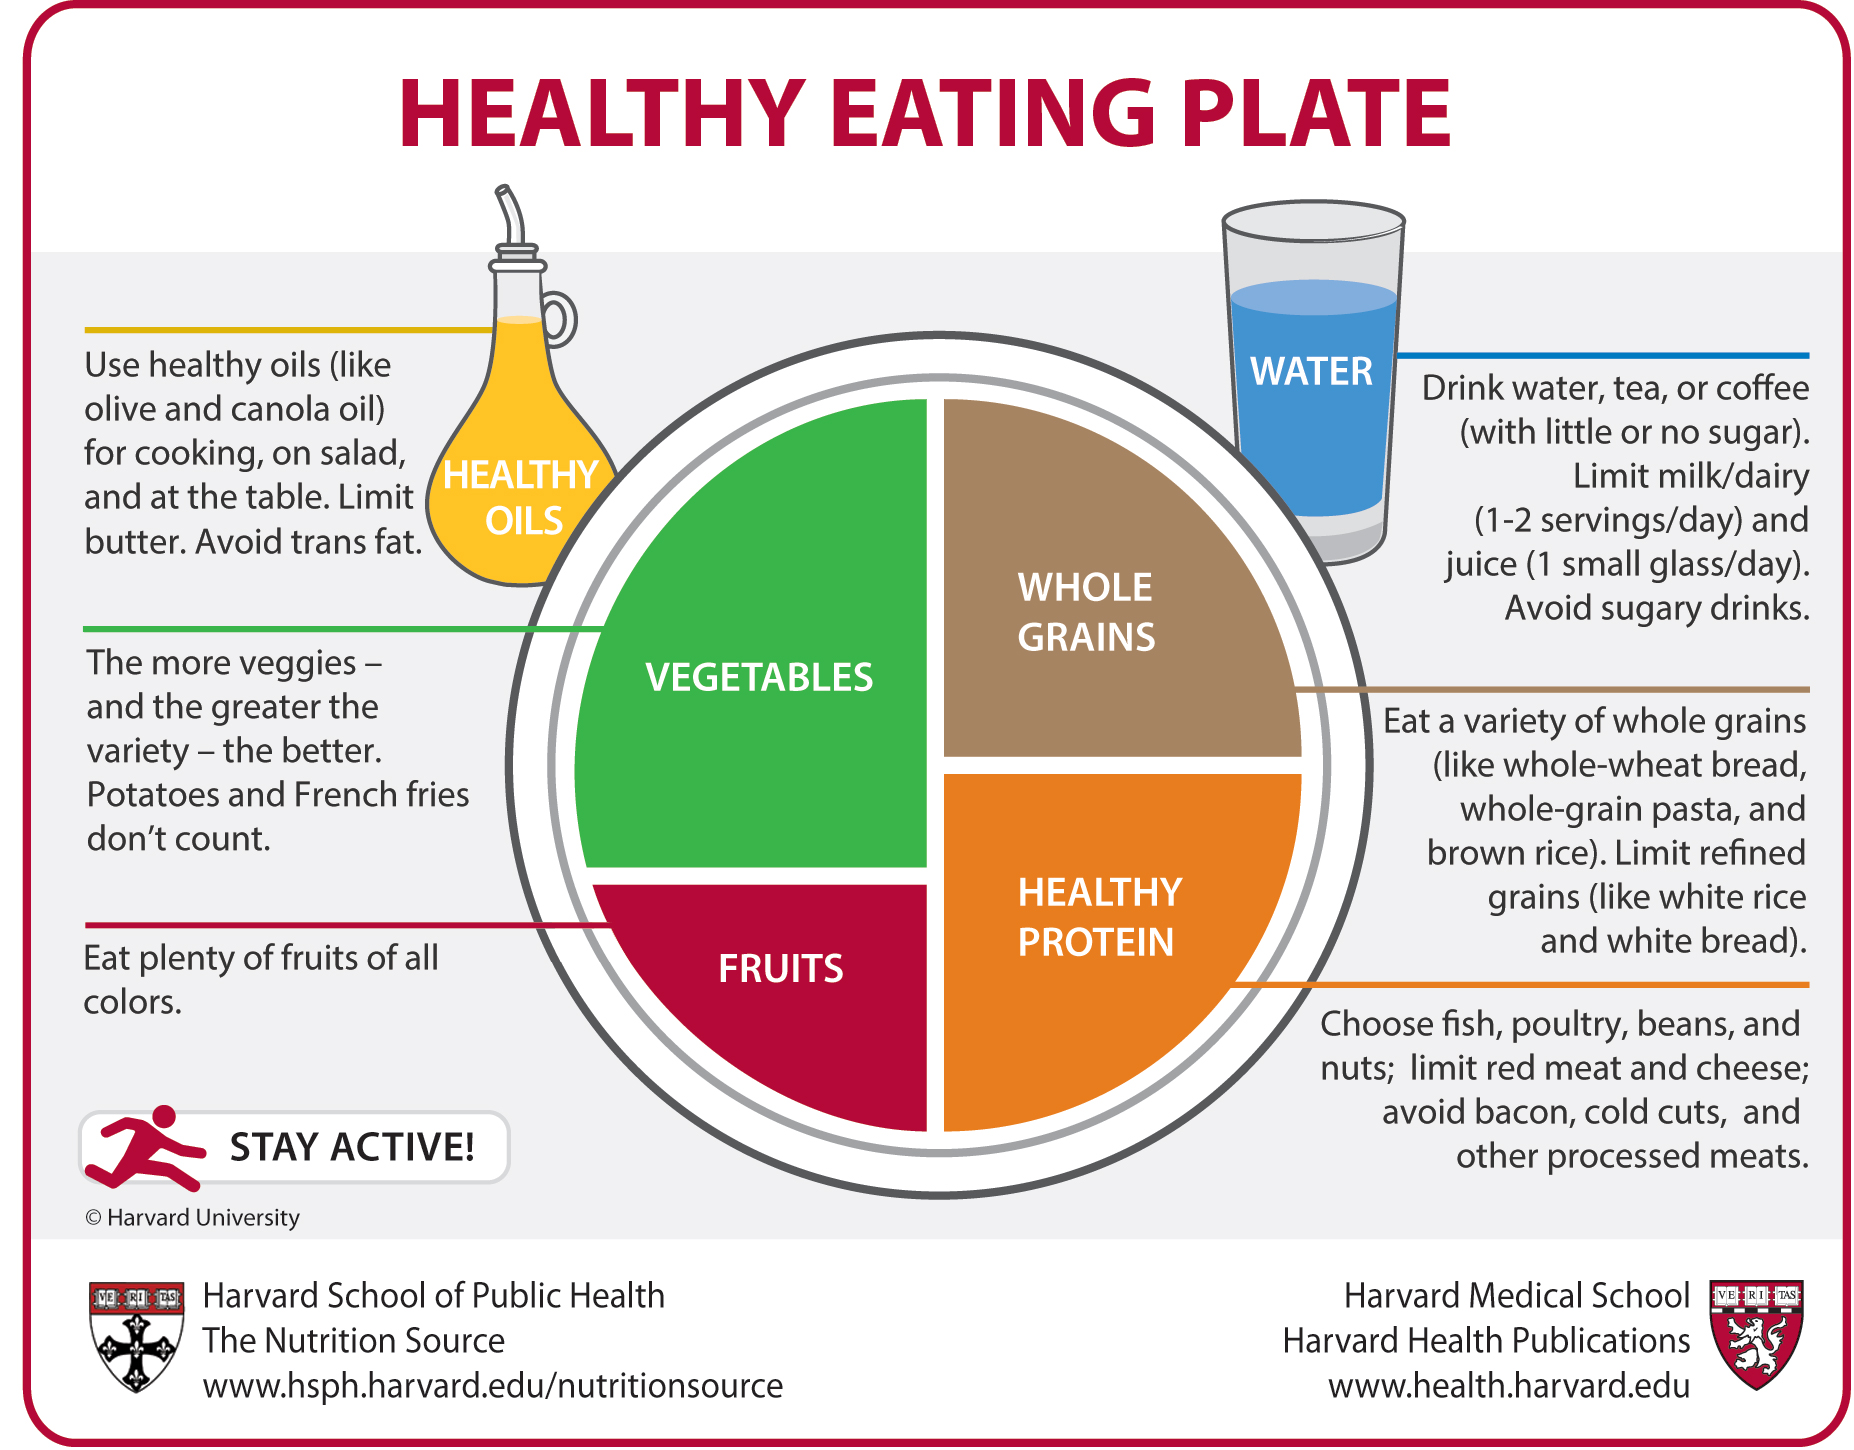 Healthy Eating Plate Sustainability At Harvard